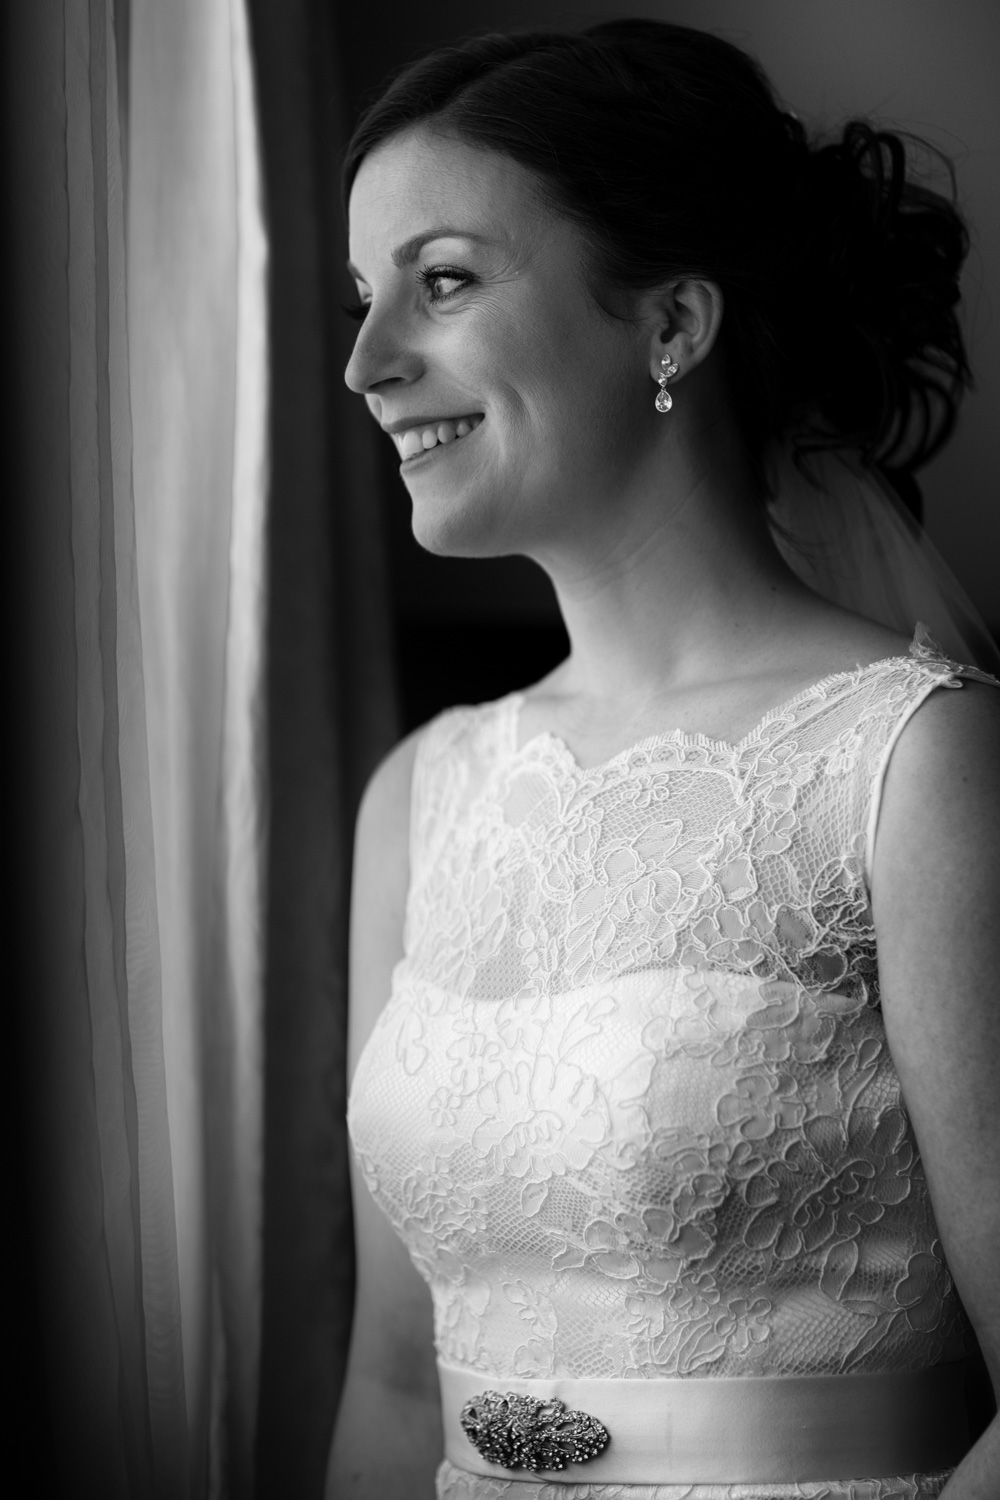 South-Wales-Wedding-Photographer-Mark-Barnes-Newport-The-old-barn-inn-Ginette-and-Lewis-blog-11.jpg